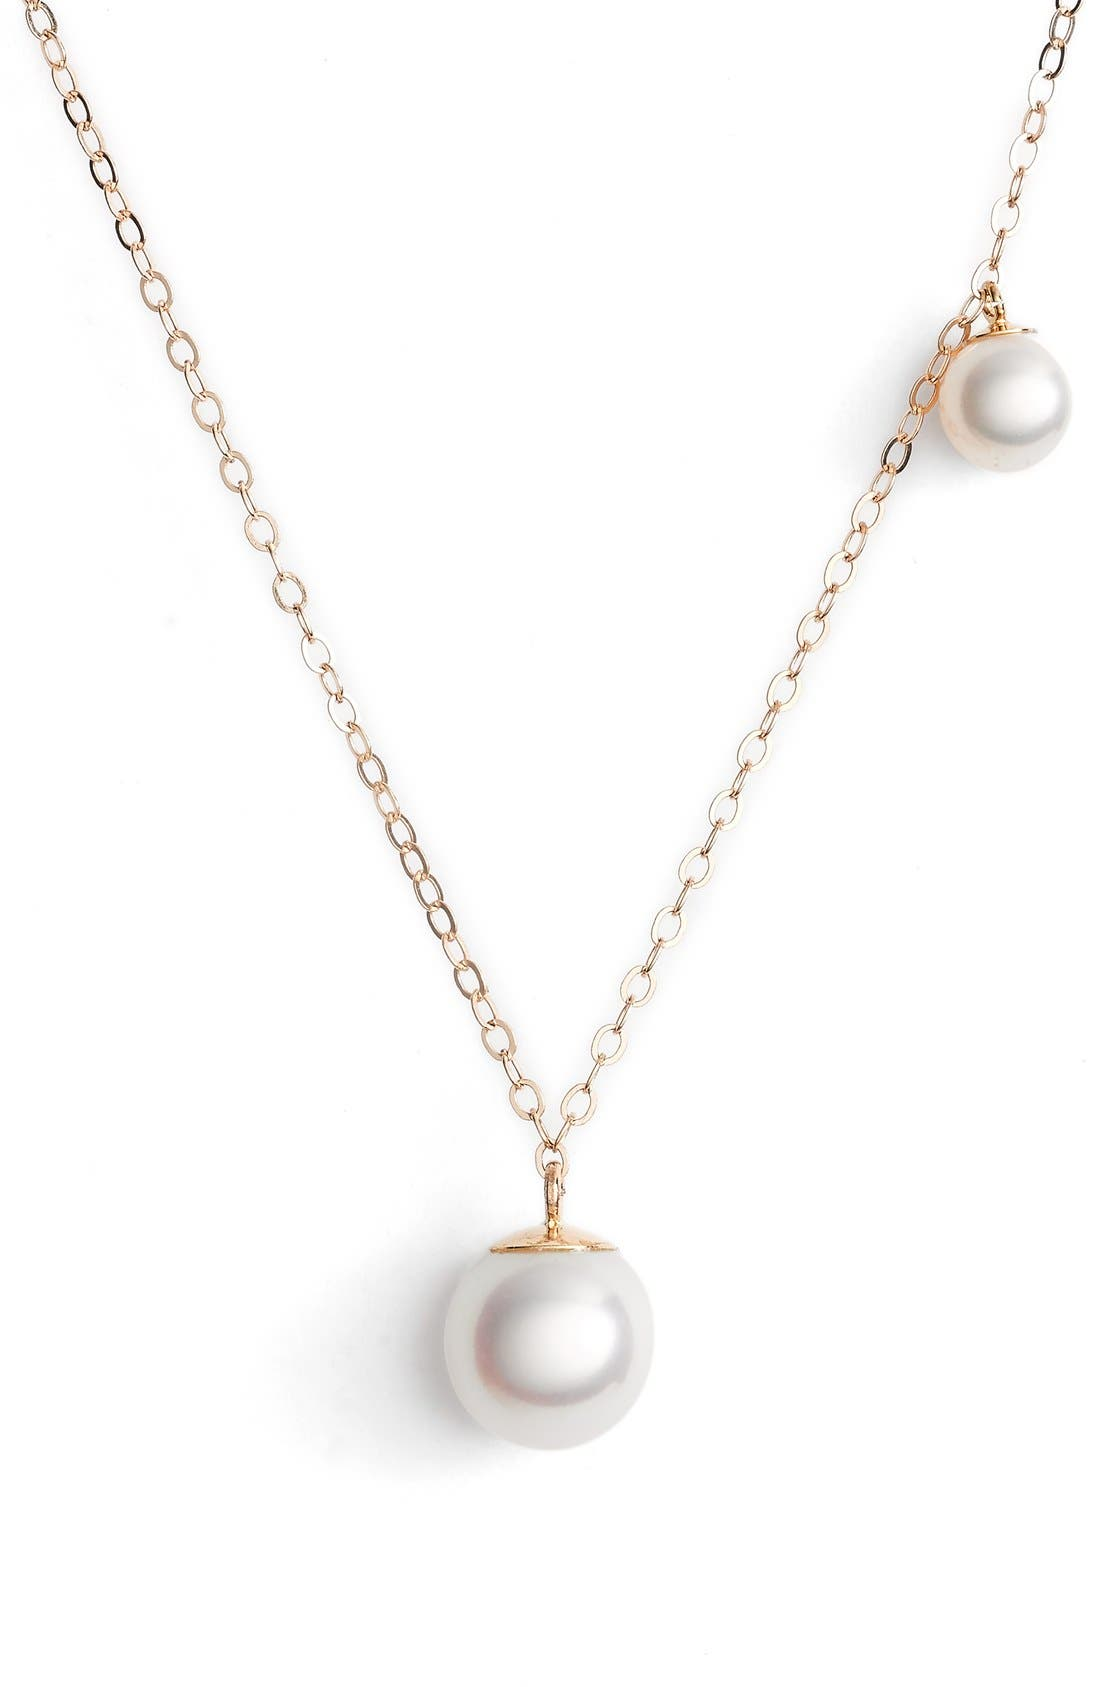 Double Pearl Pendant Necklace,                             Main thumbnail 1, color,                             YELLOW GOLD/ PEARL